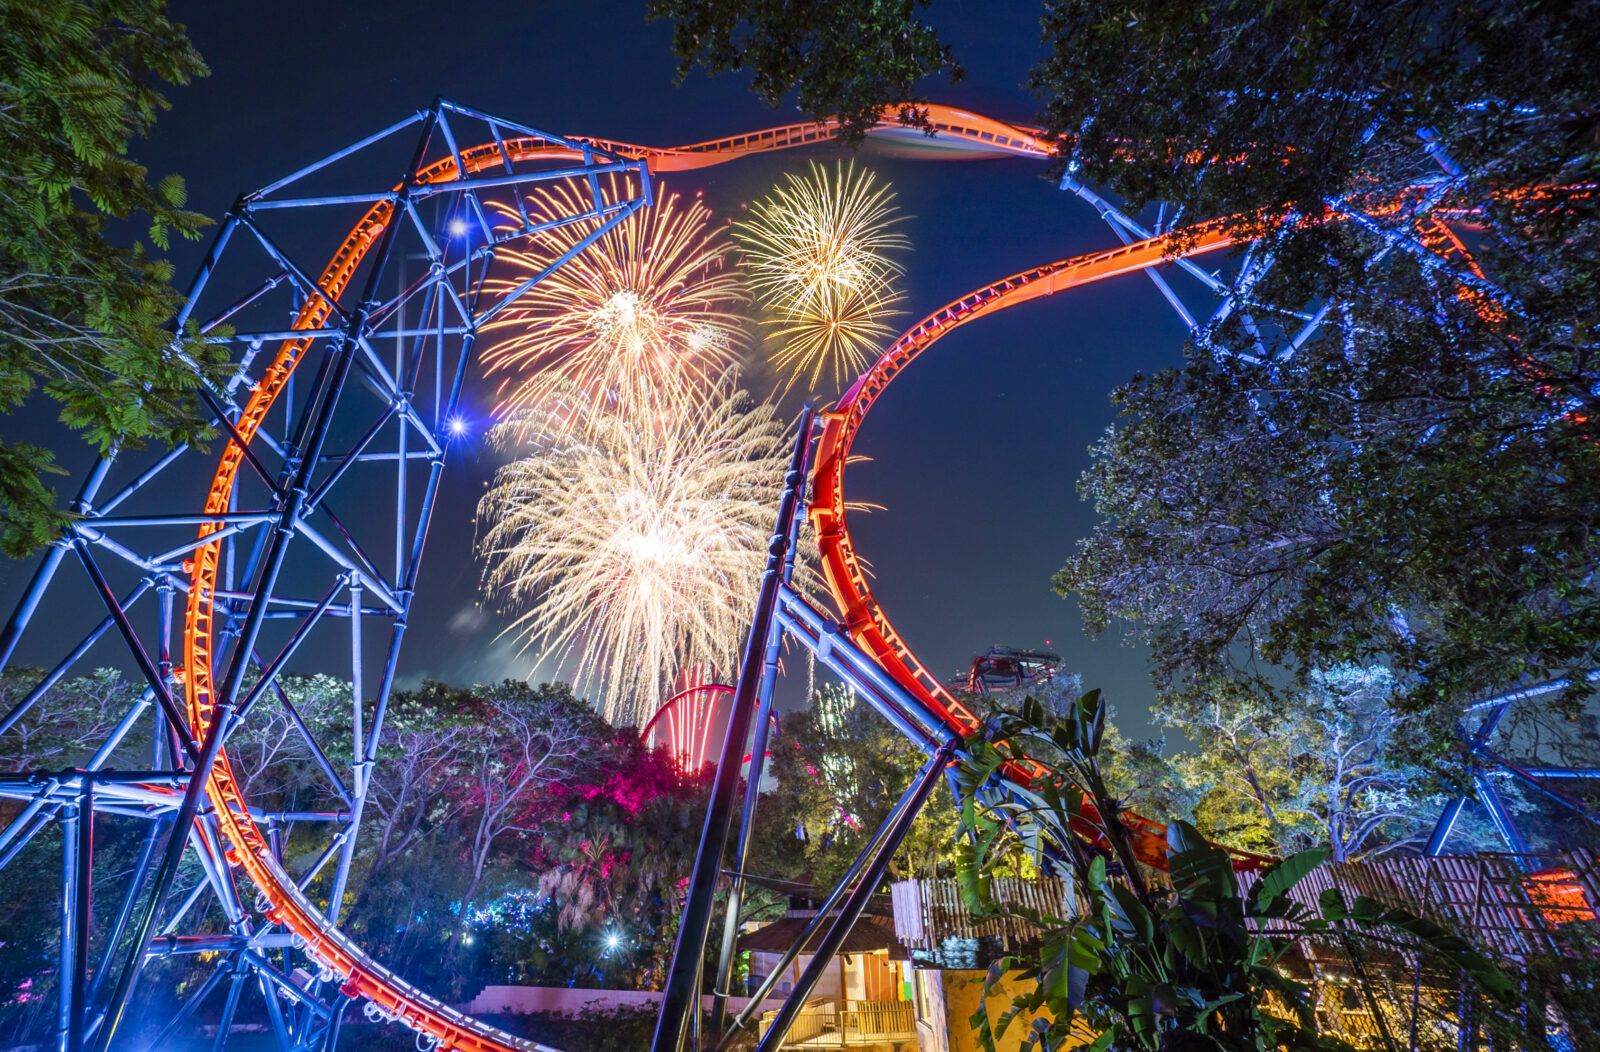 Busch Gardens Tampa Bay Summer Nights 2020